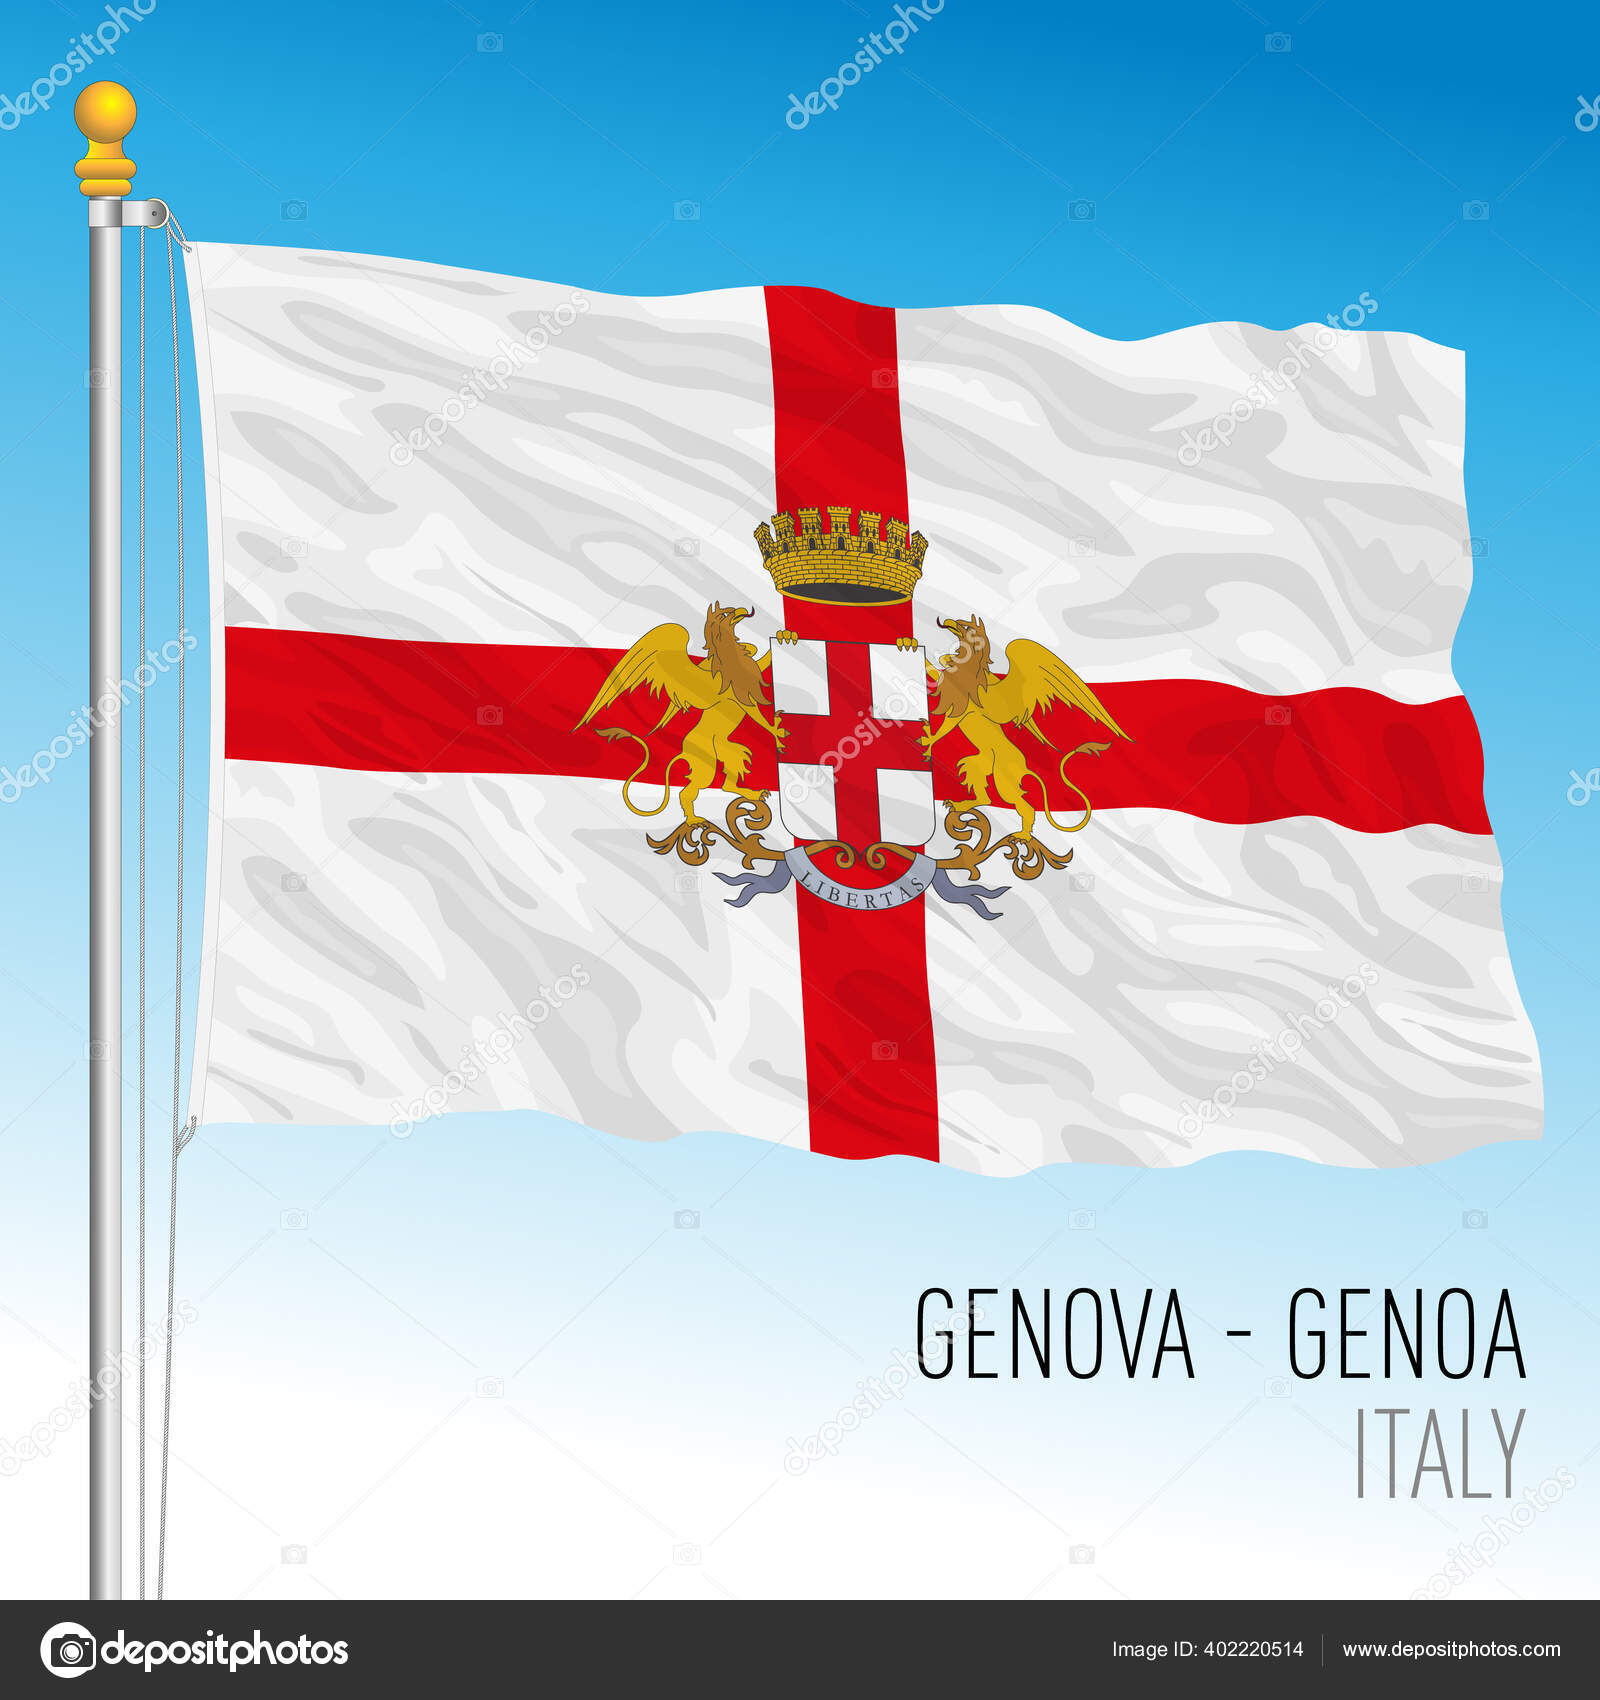 City Genoa Official Flag Liguria Italy Vector Illustration Stock Vector C Frizio 402220514